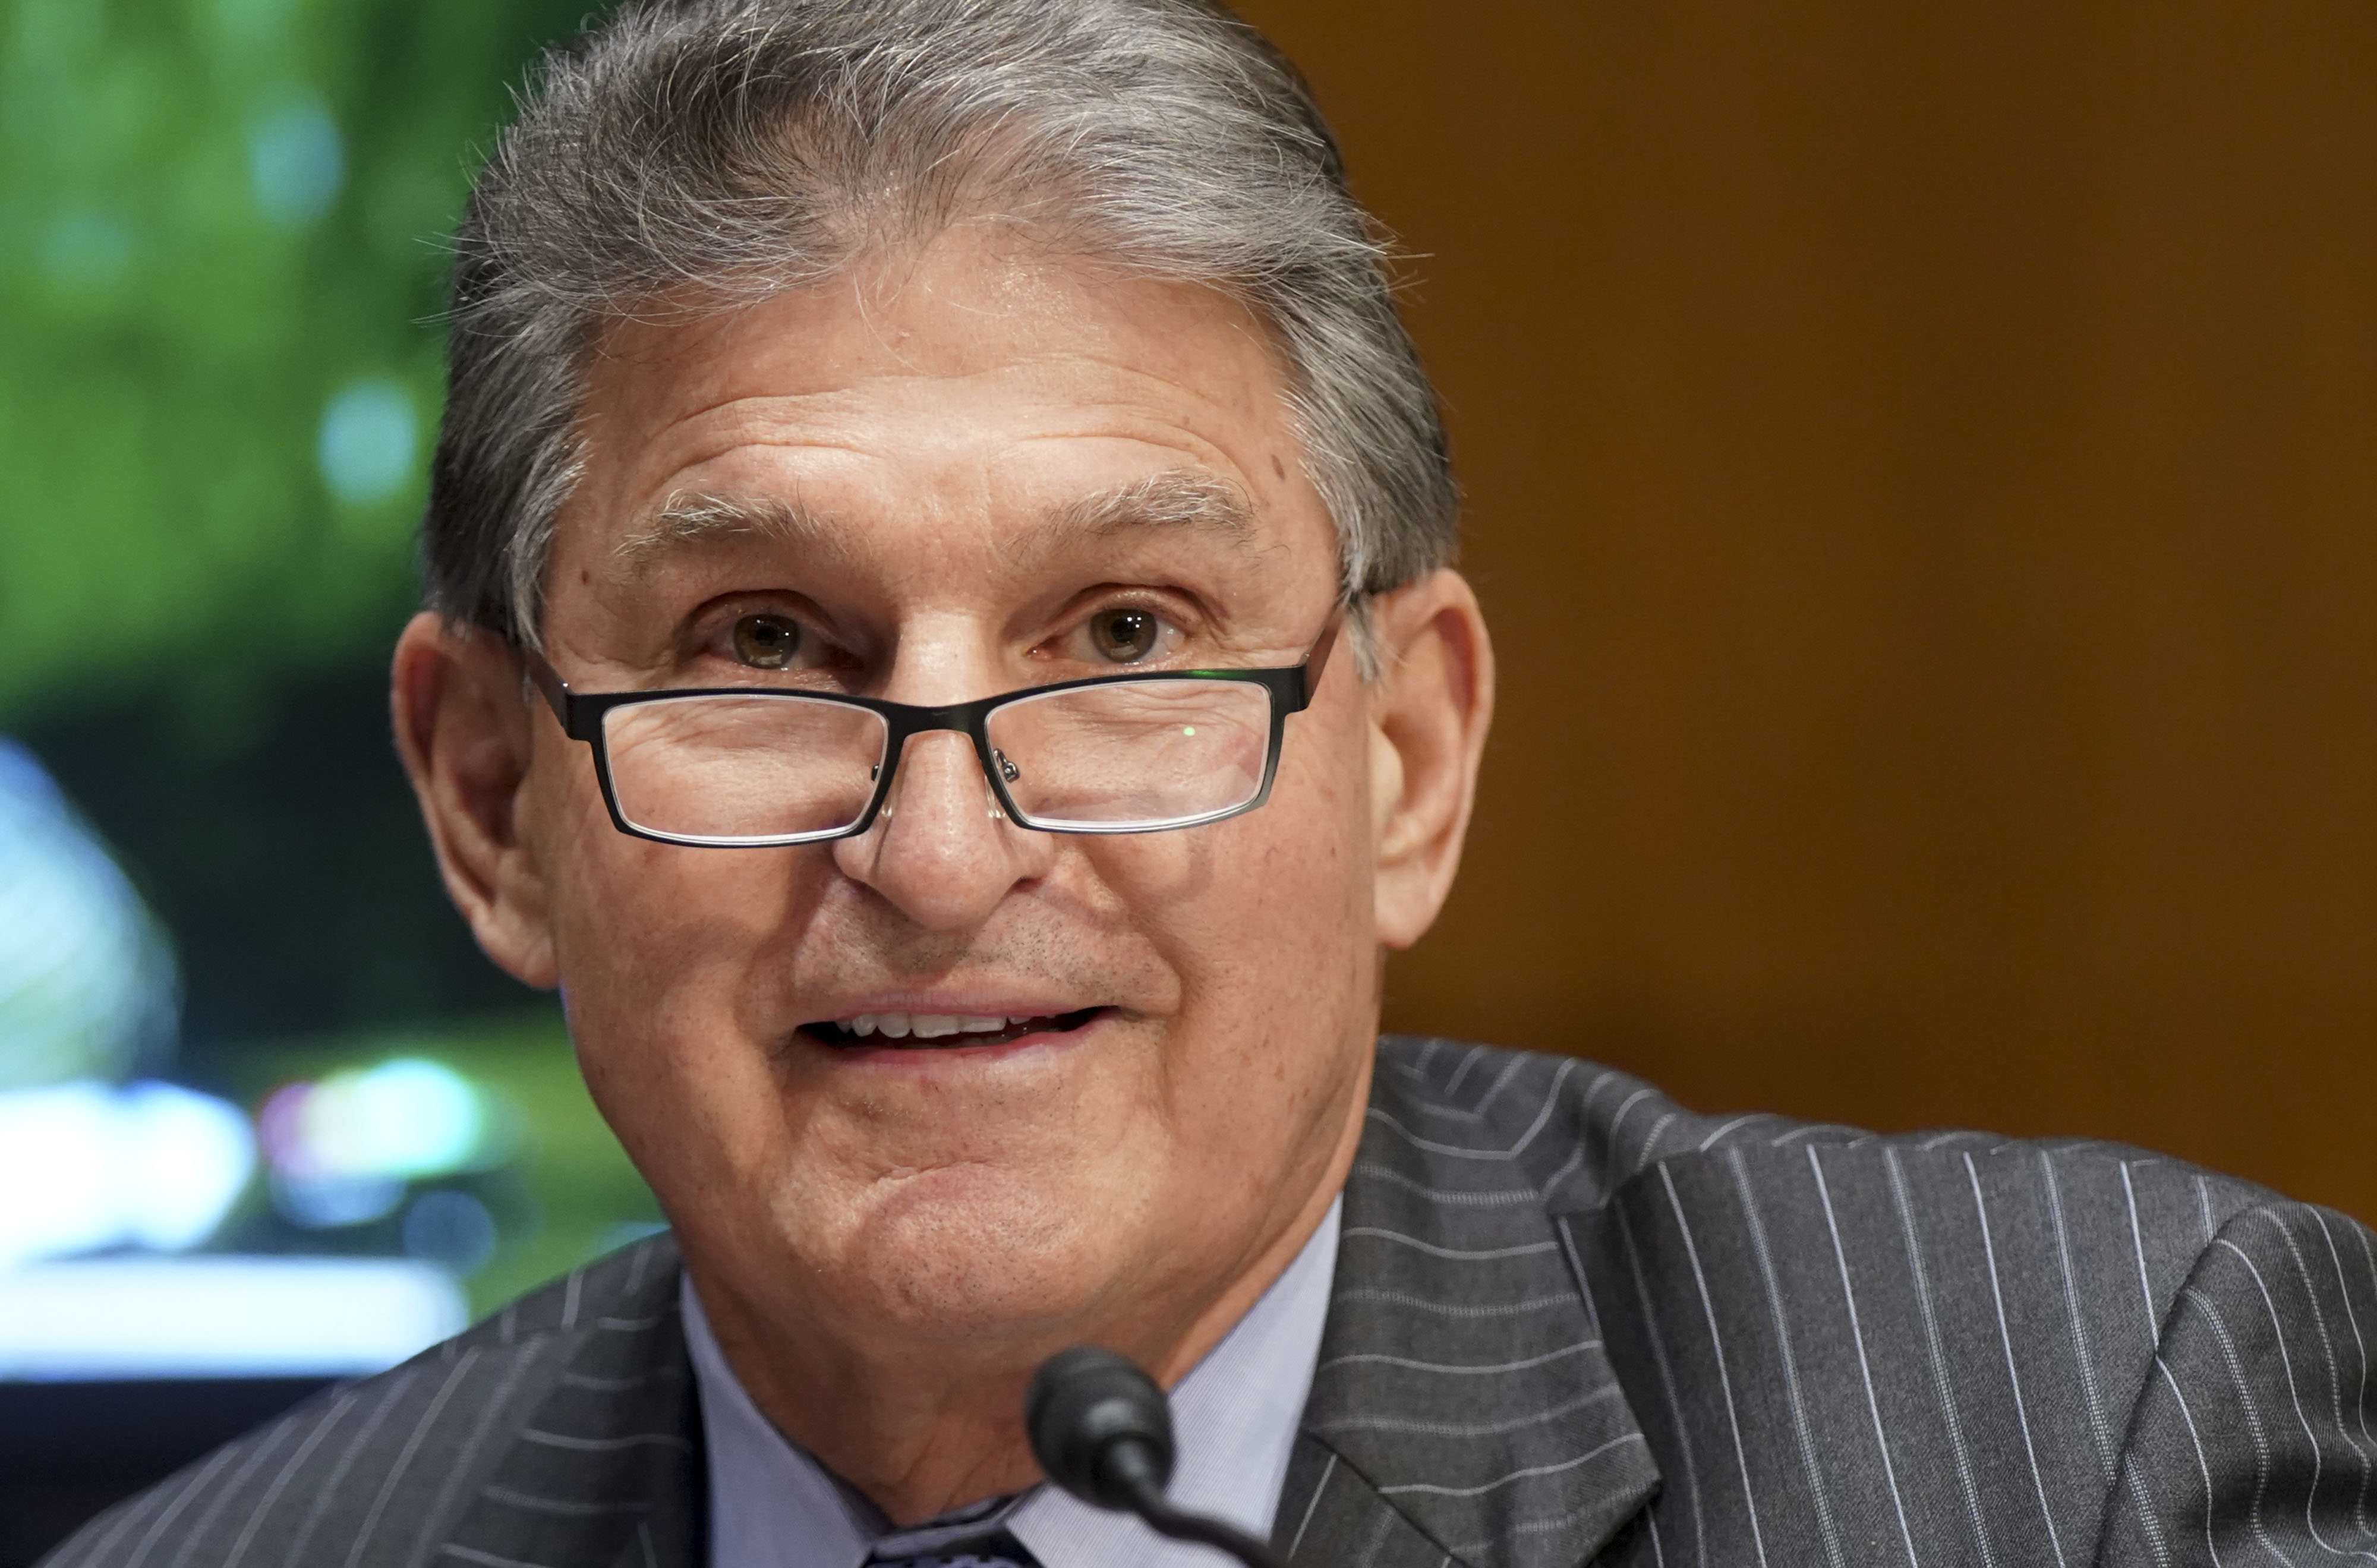 Democrats still face tricky path to gutting filibuster despite Manchin's openness to reforms